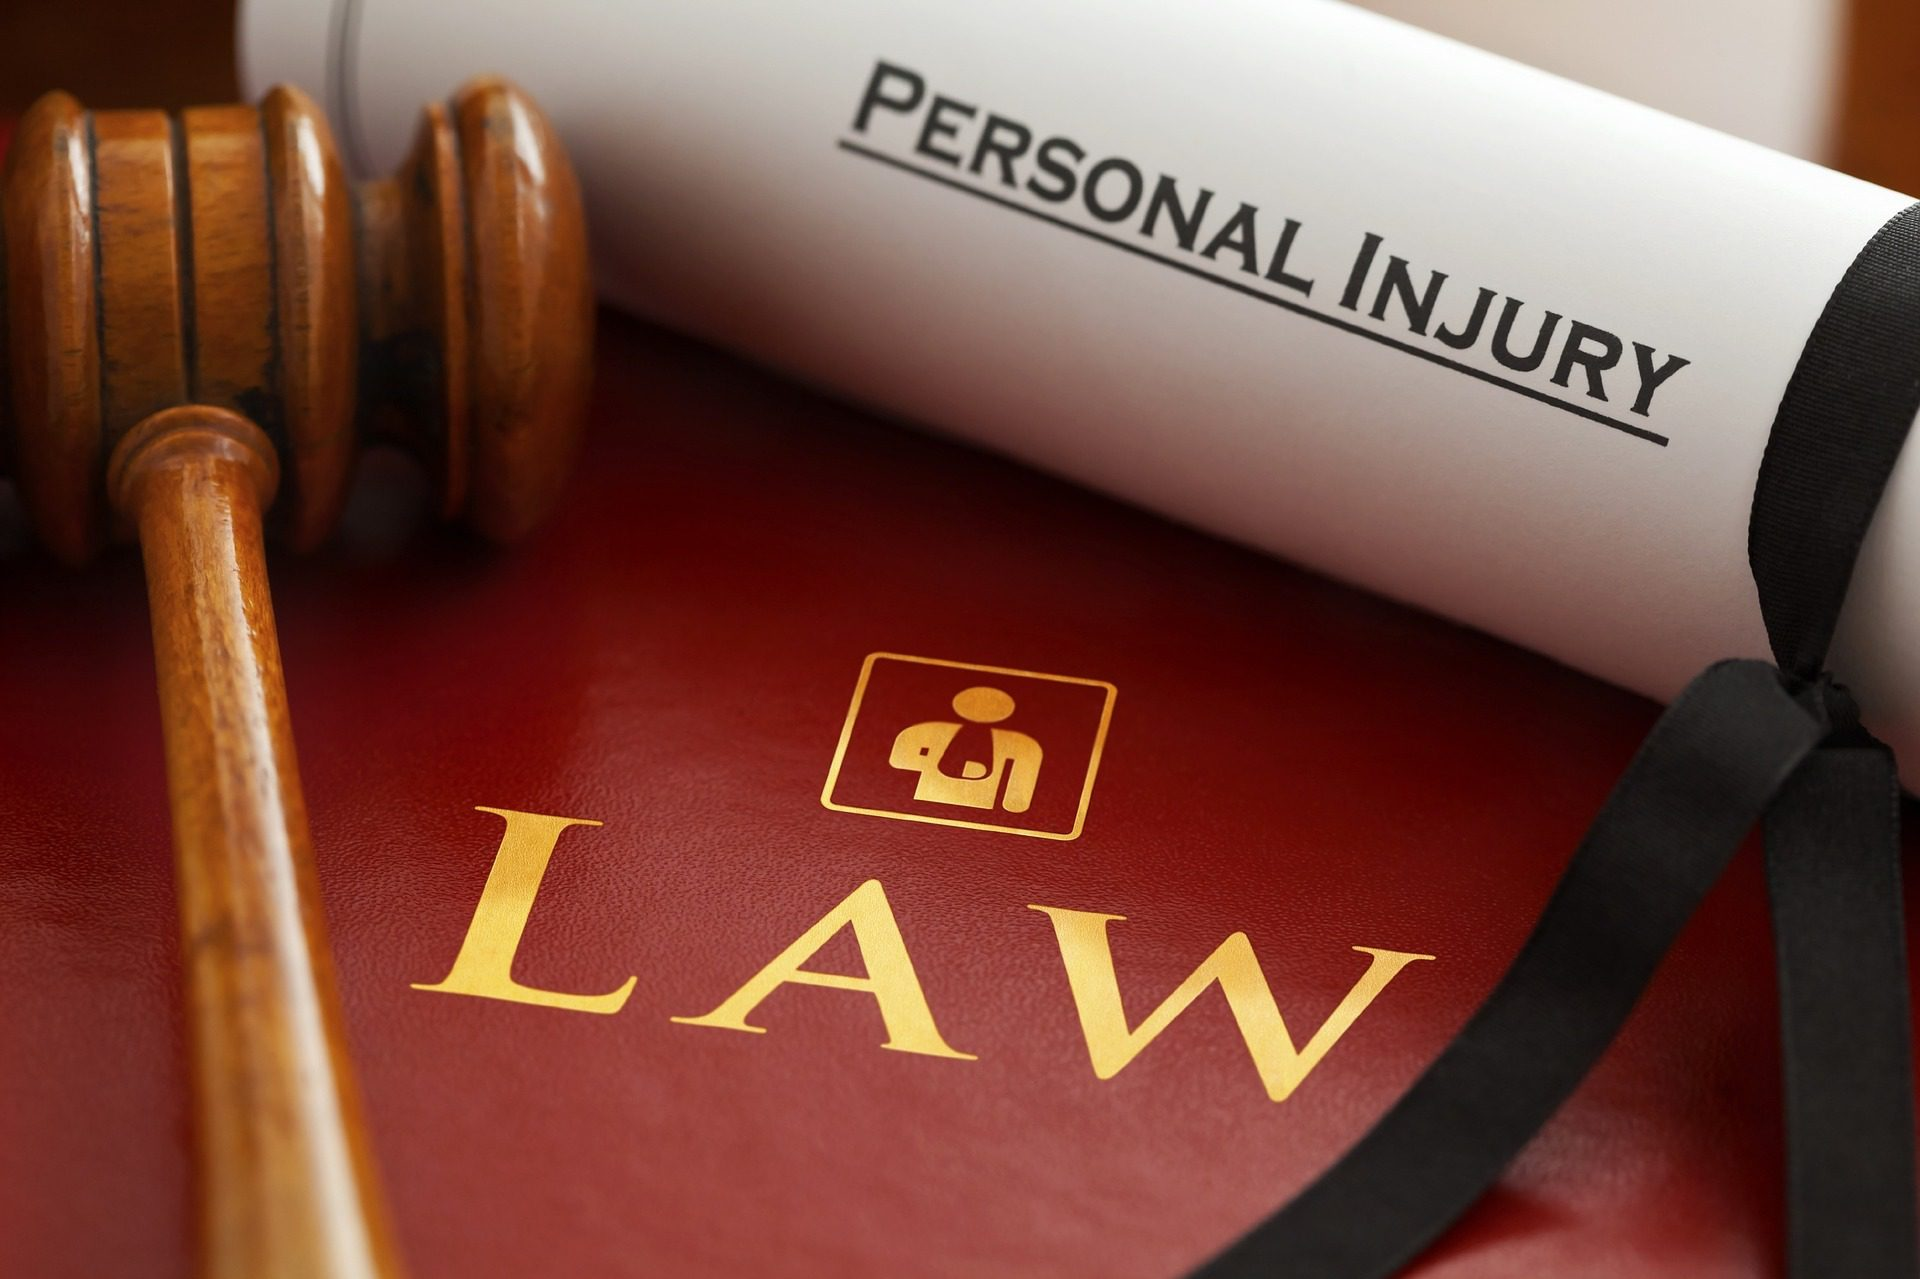 What You Should Know When Pursuing a Personal Injury Claim